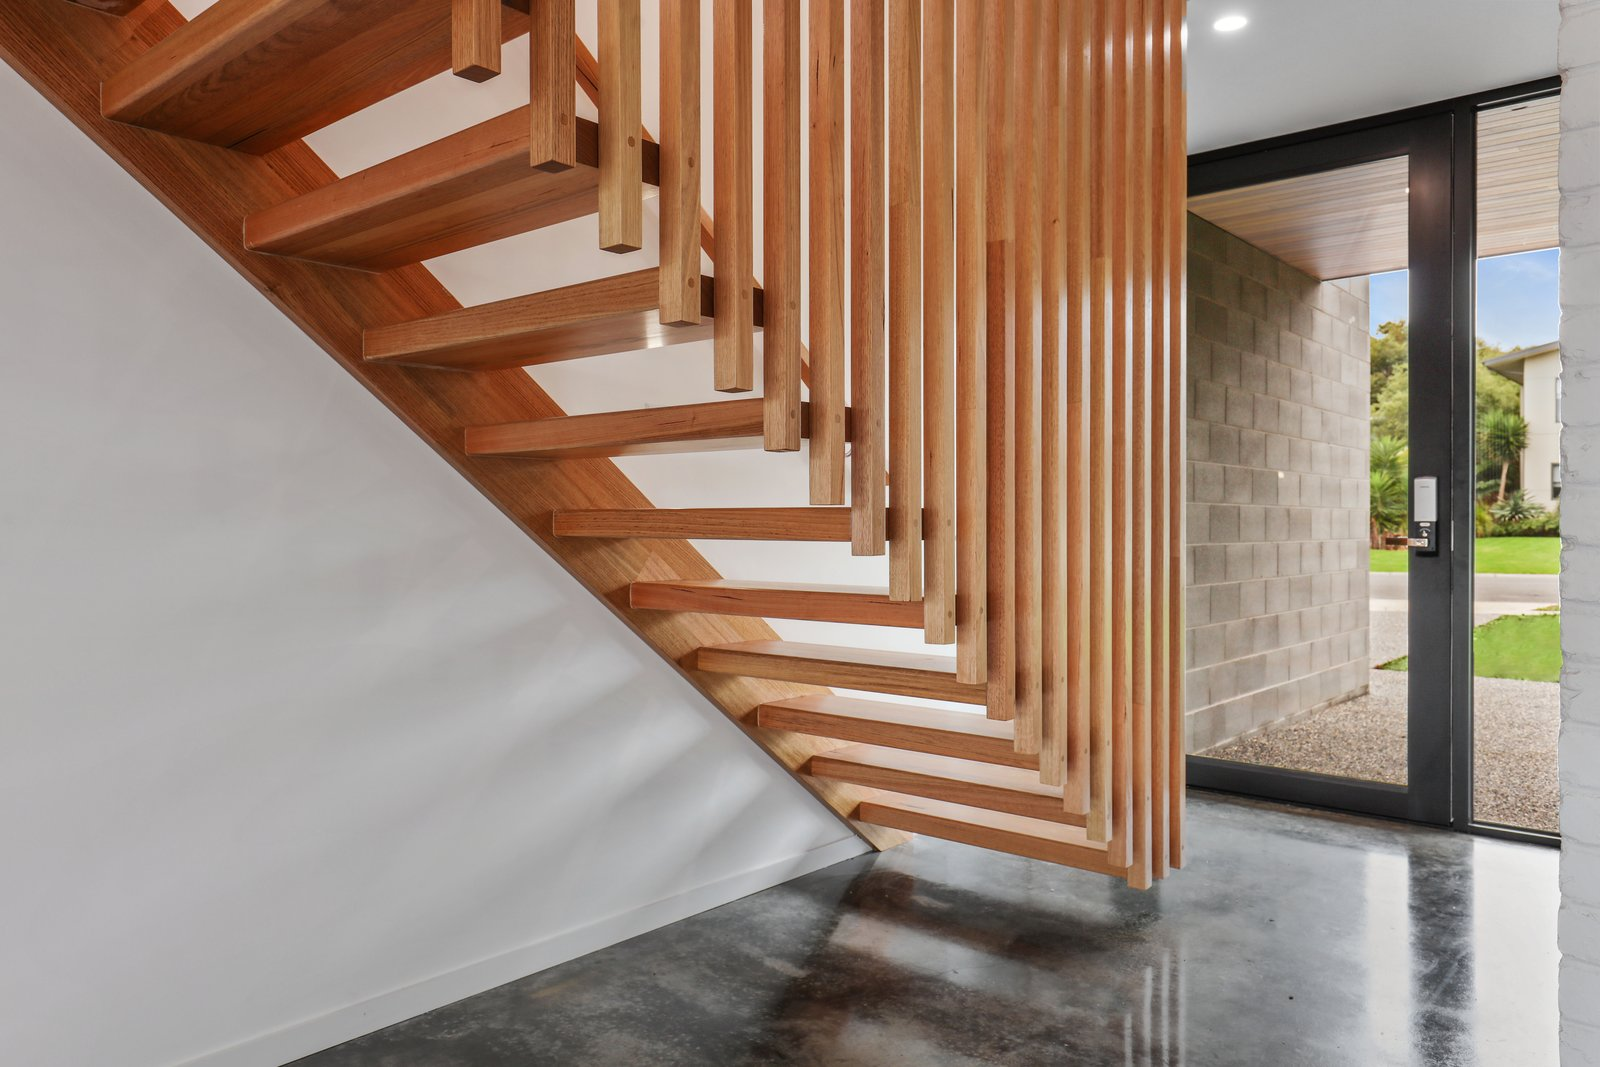 Staircase, Wood Tread, and Wood Railing  Tamara Crecsent by Inverloch 3996